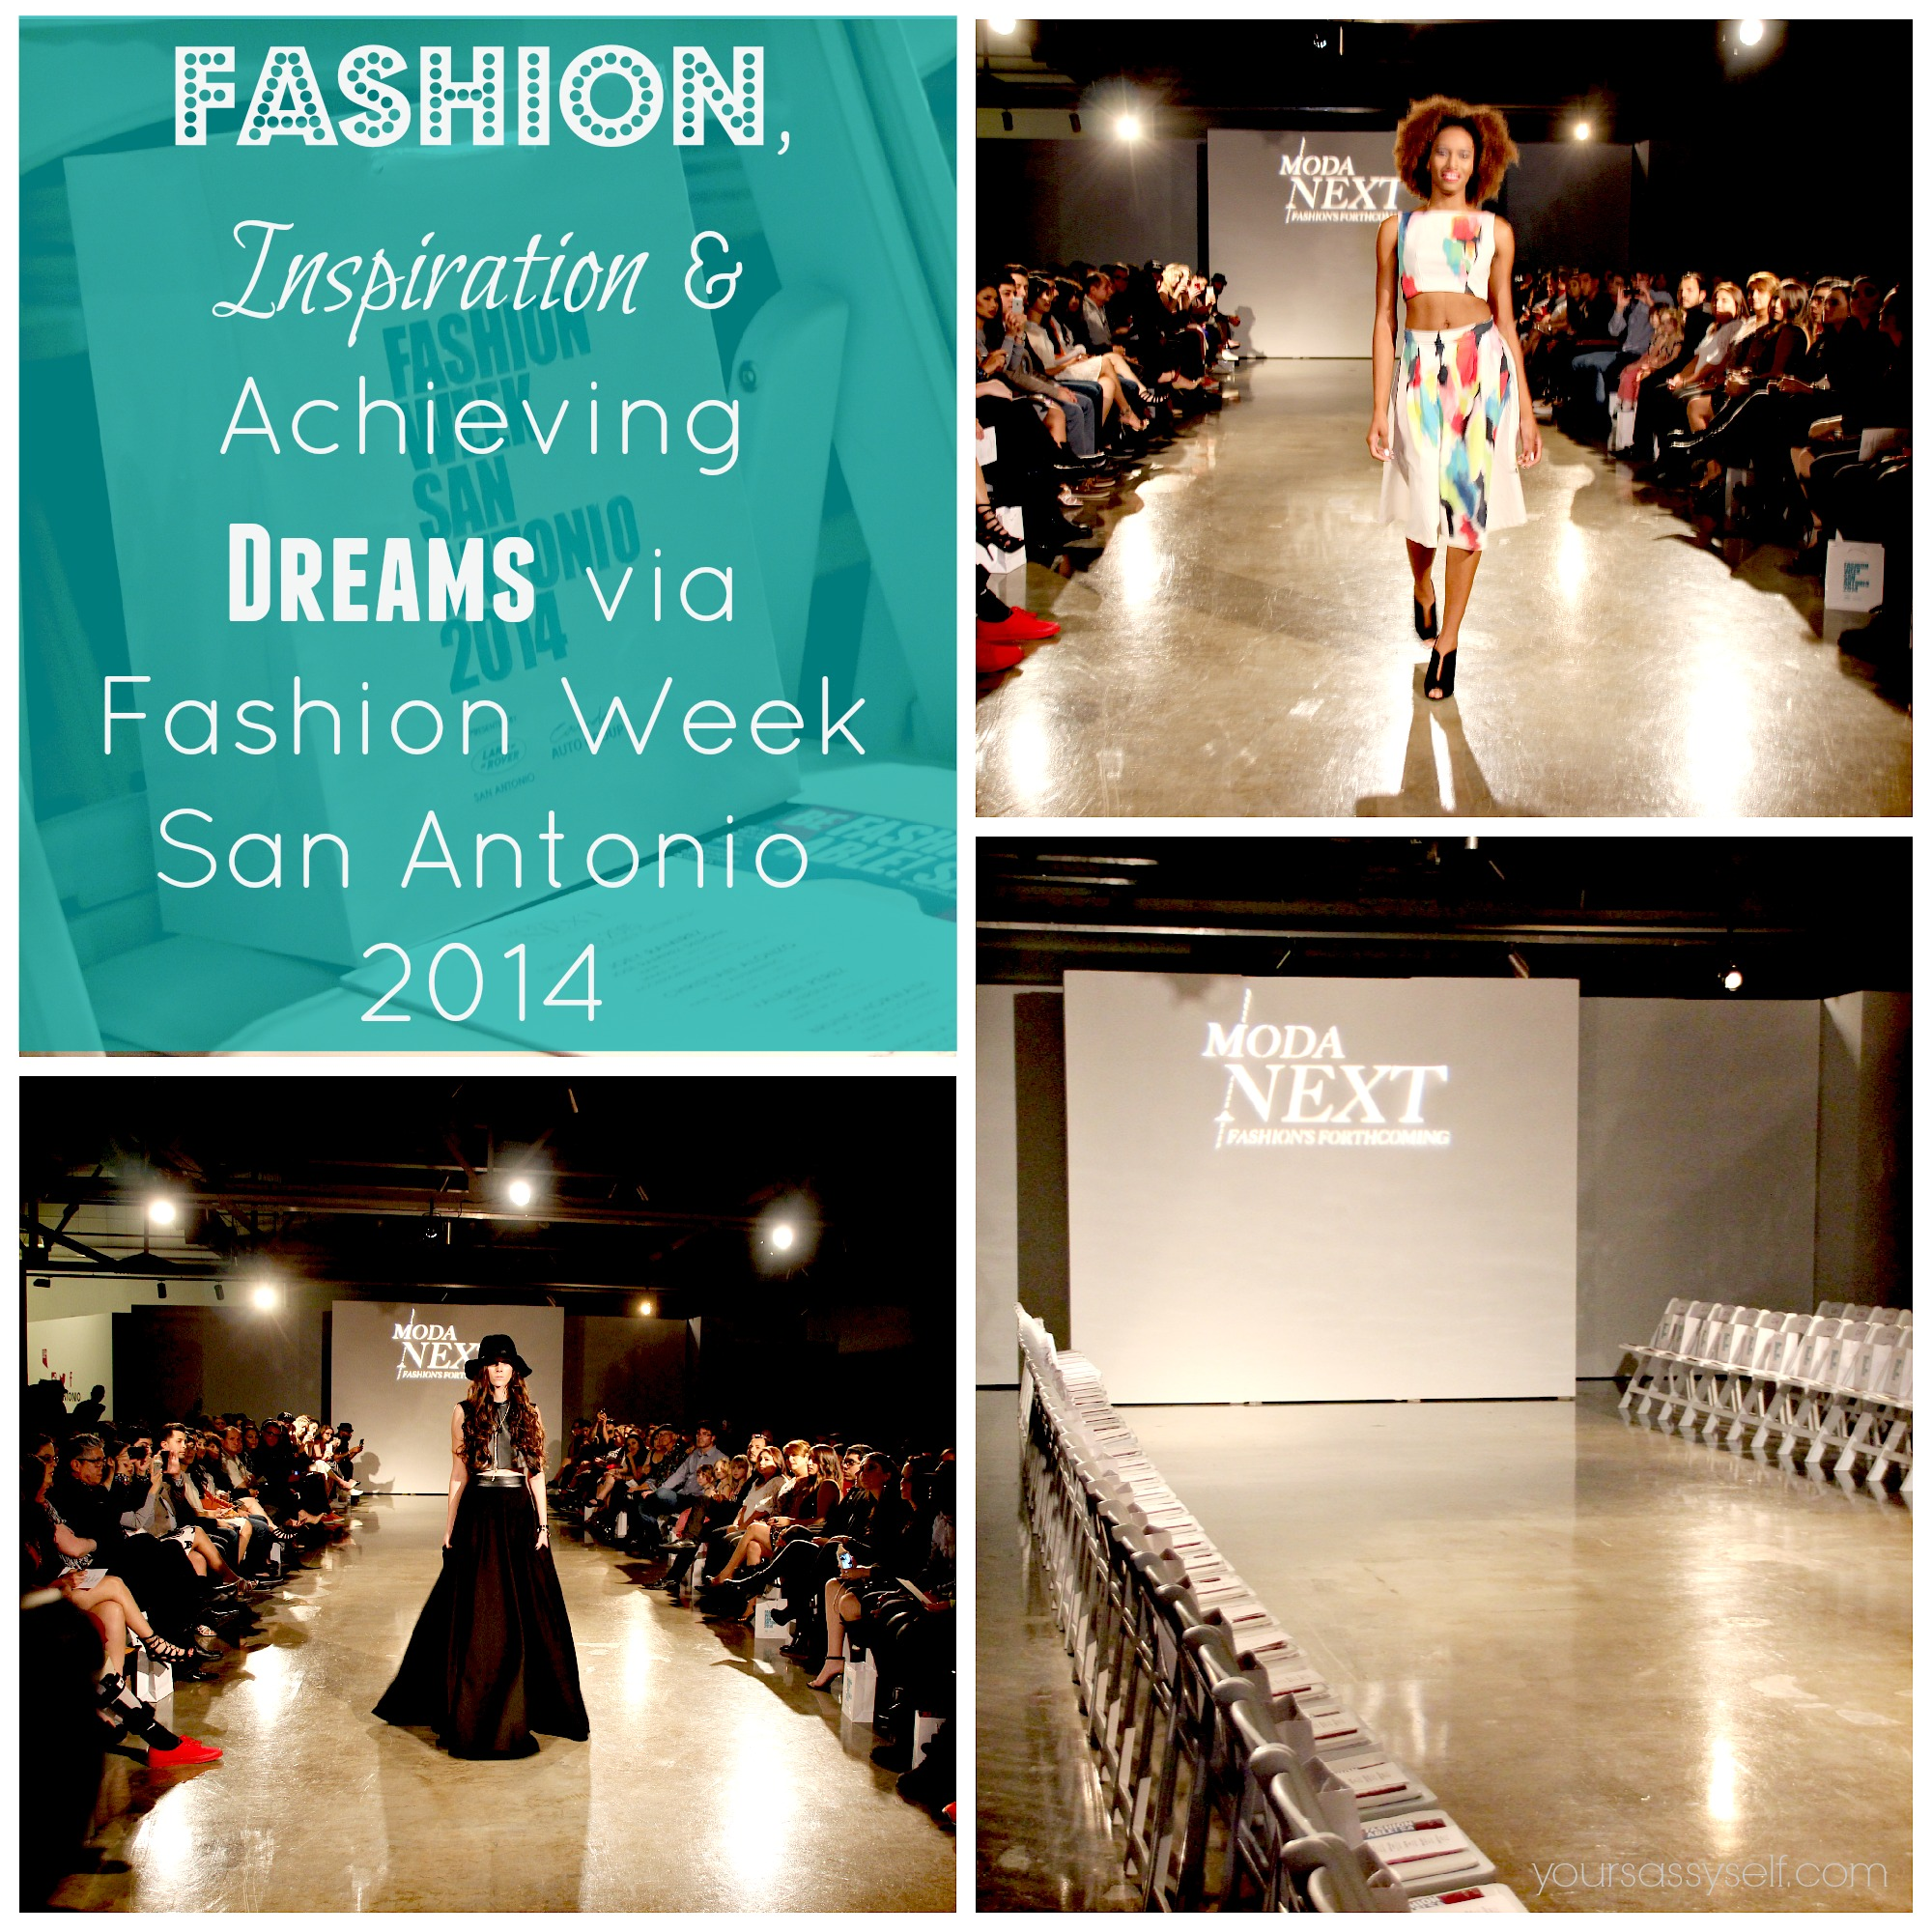 Fashion, Inspiration & Achieving Dreams via Fashion Week San Antonio 2014